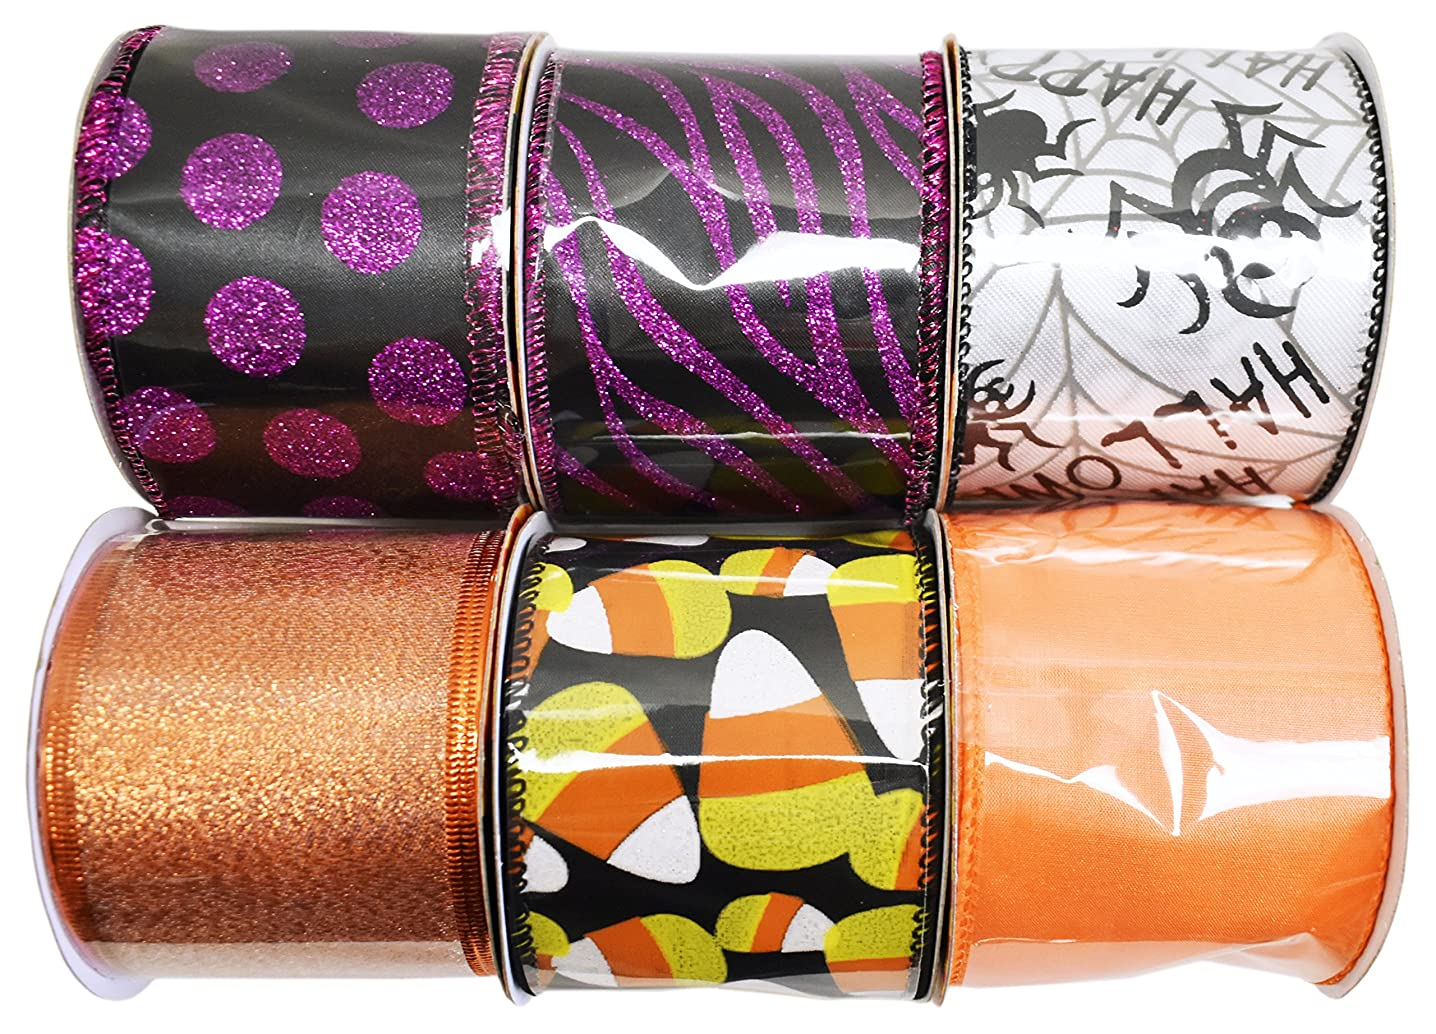 Set of 6 Halloween Wired Ribbon Rolls! 3 Yards of Ribbon Per Roll! Spooky Halloween Decorations Perfect for Classrooms, Schools, Parties and More! (6, Set 1)